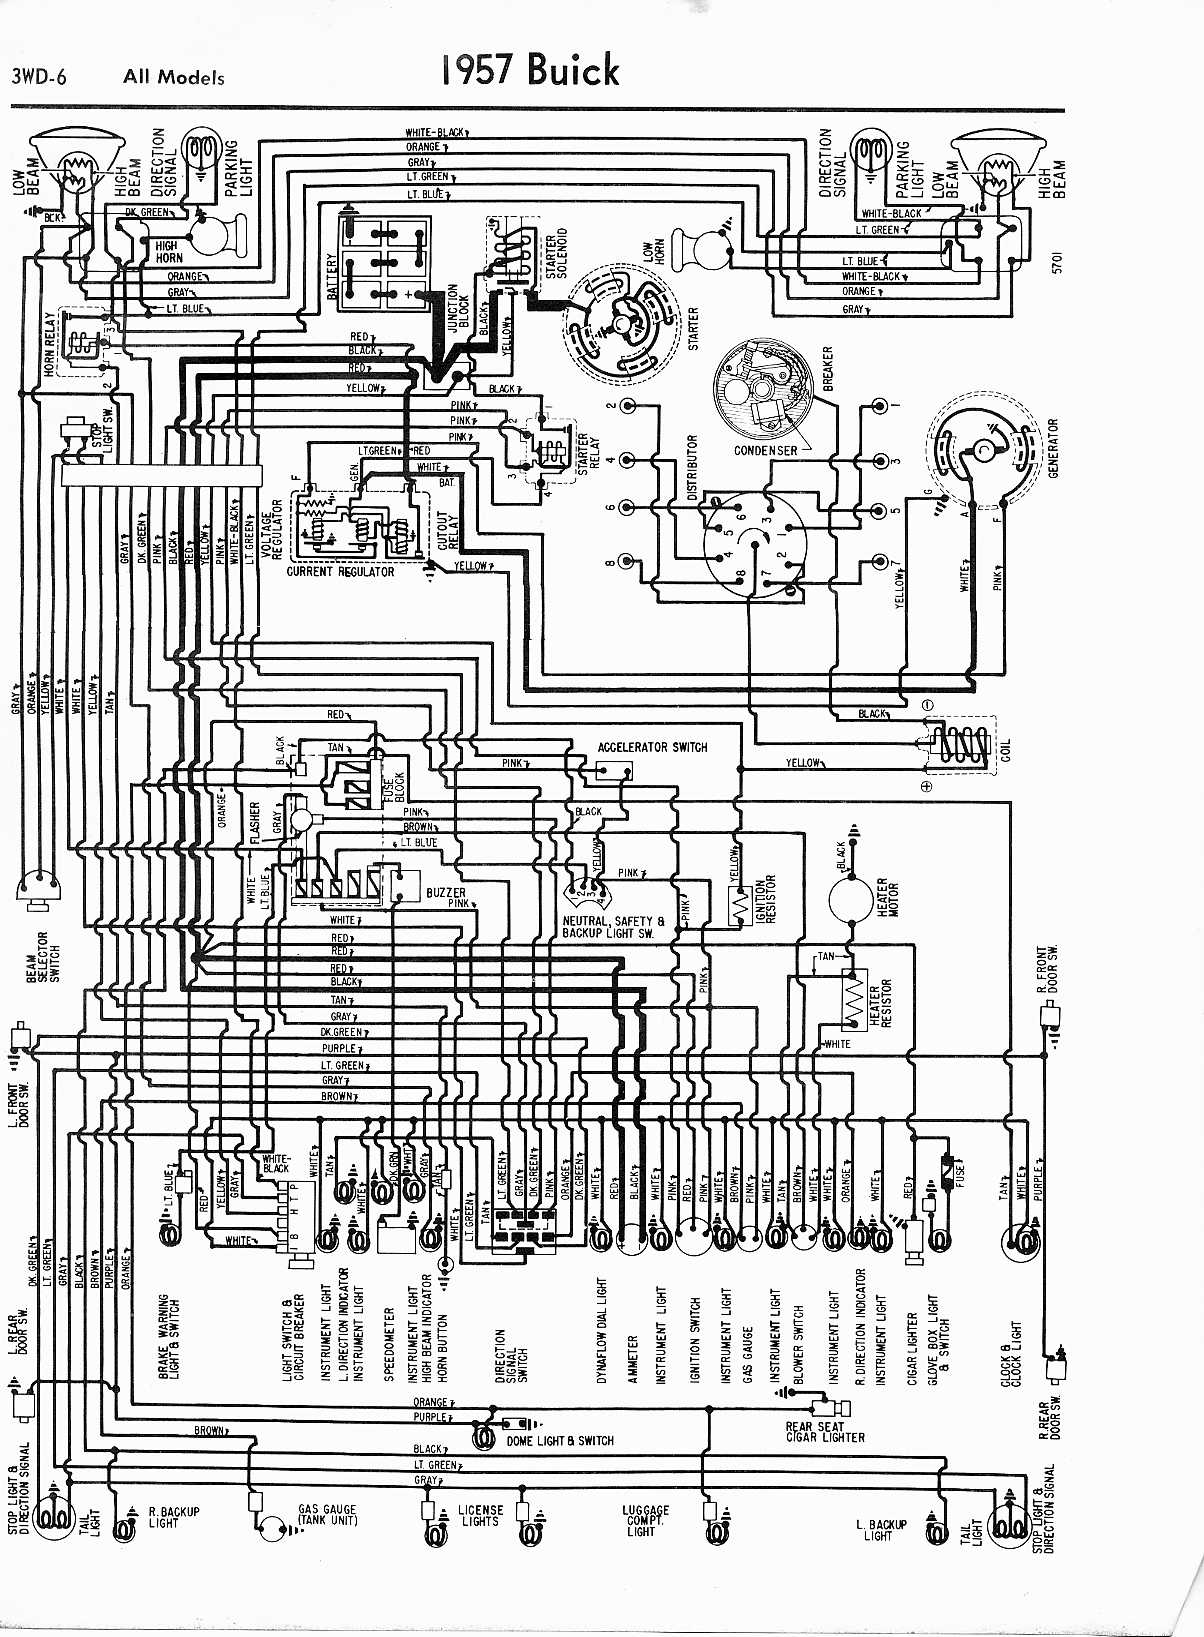 buick wiring diagrams example electrical wiring diagram u2022 rh cranejapan co 2004 Buick LeSabre Wiring-Diagram 1996 buick lesabre fuel pump wiring diagram